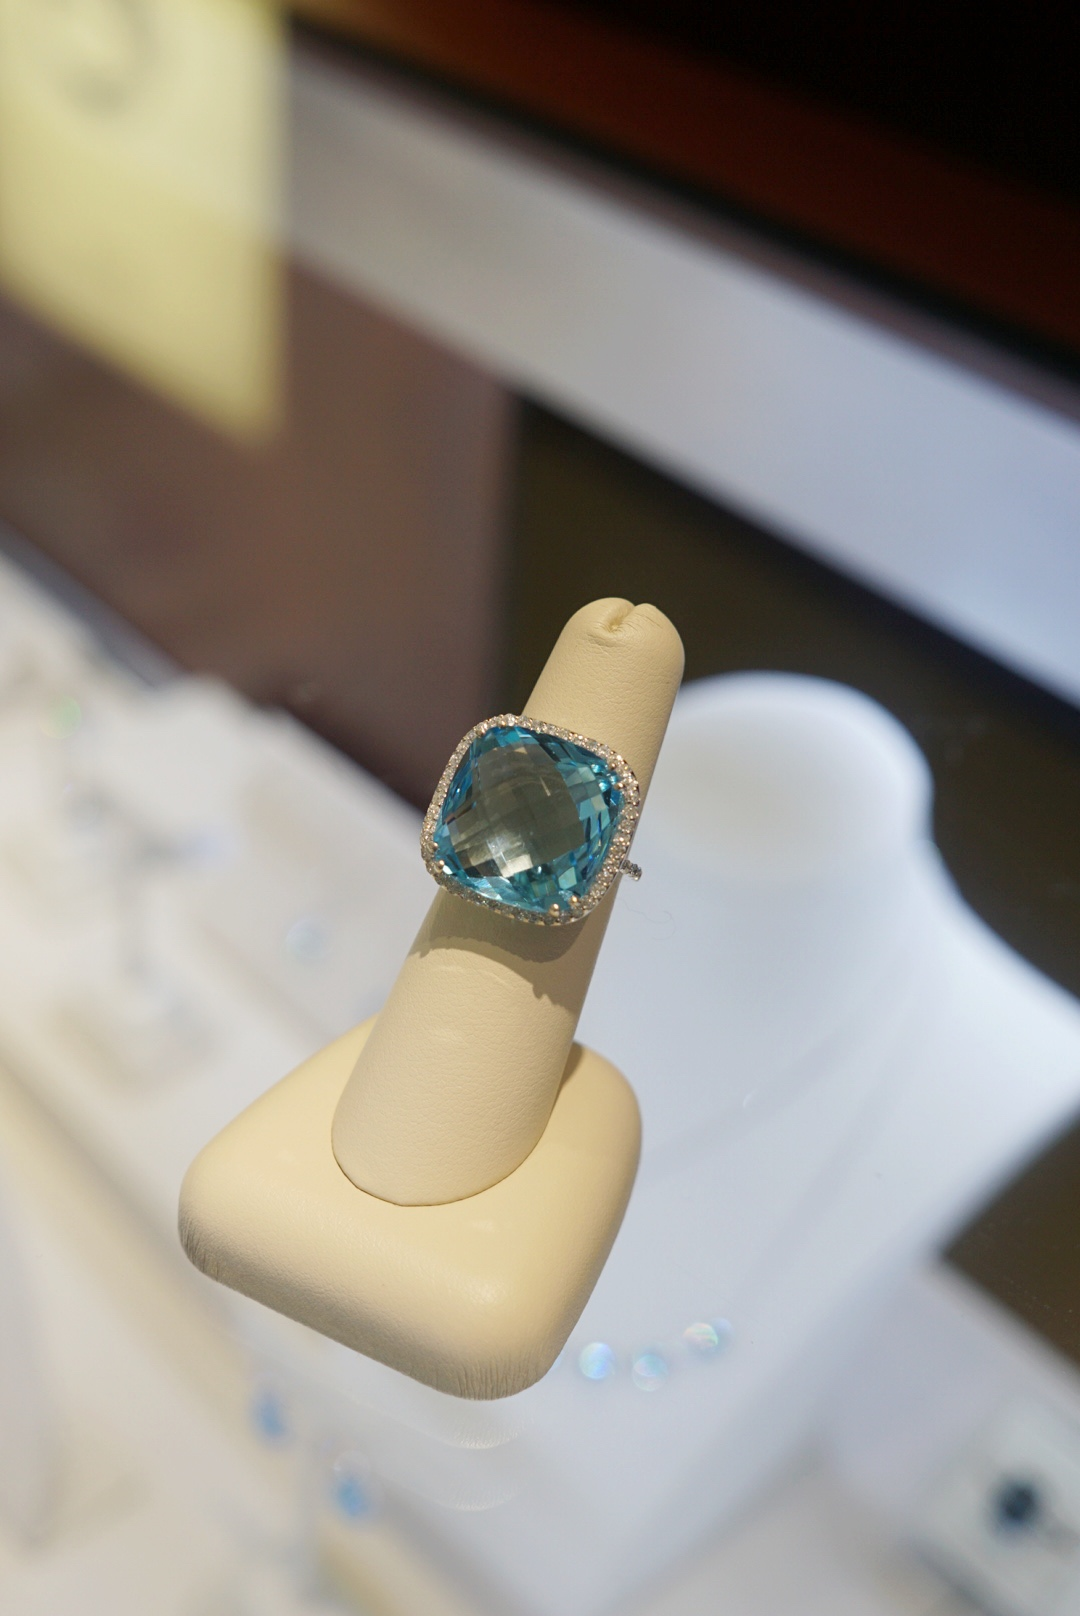 Diamonds Direct Charlotte, NC The Best Gifts and Engagement Rings